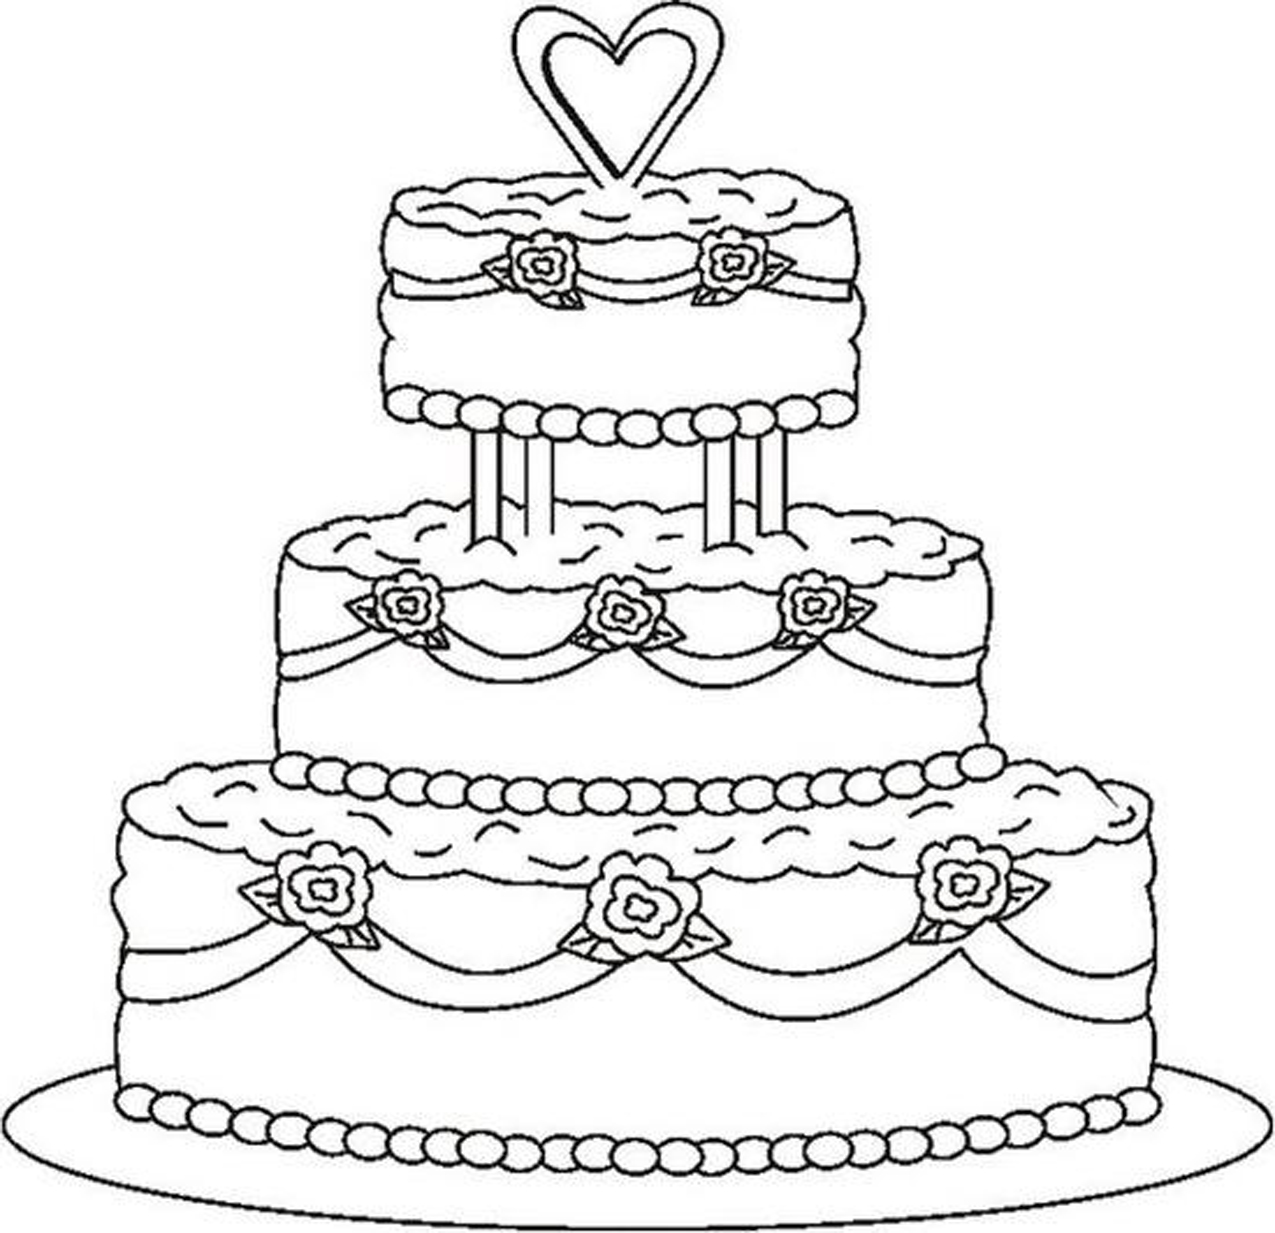 Uncategorized Free Wedding Coloring Pages To Print wedding coloring pages 13 kids download print